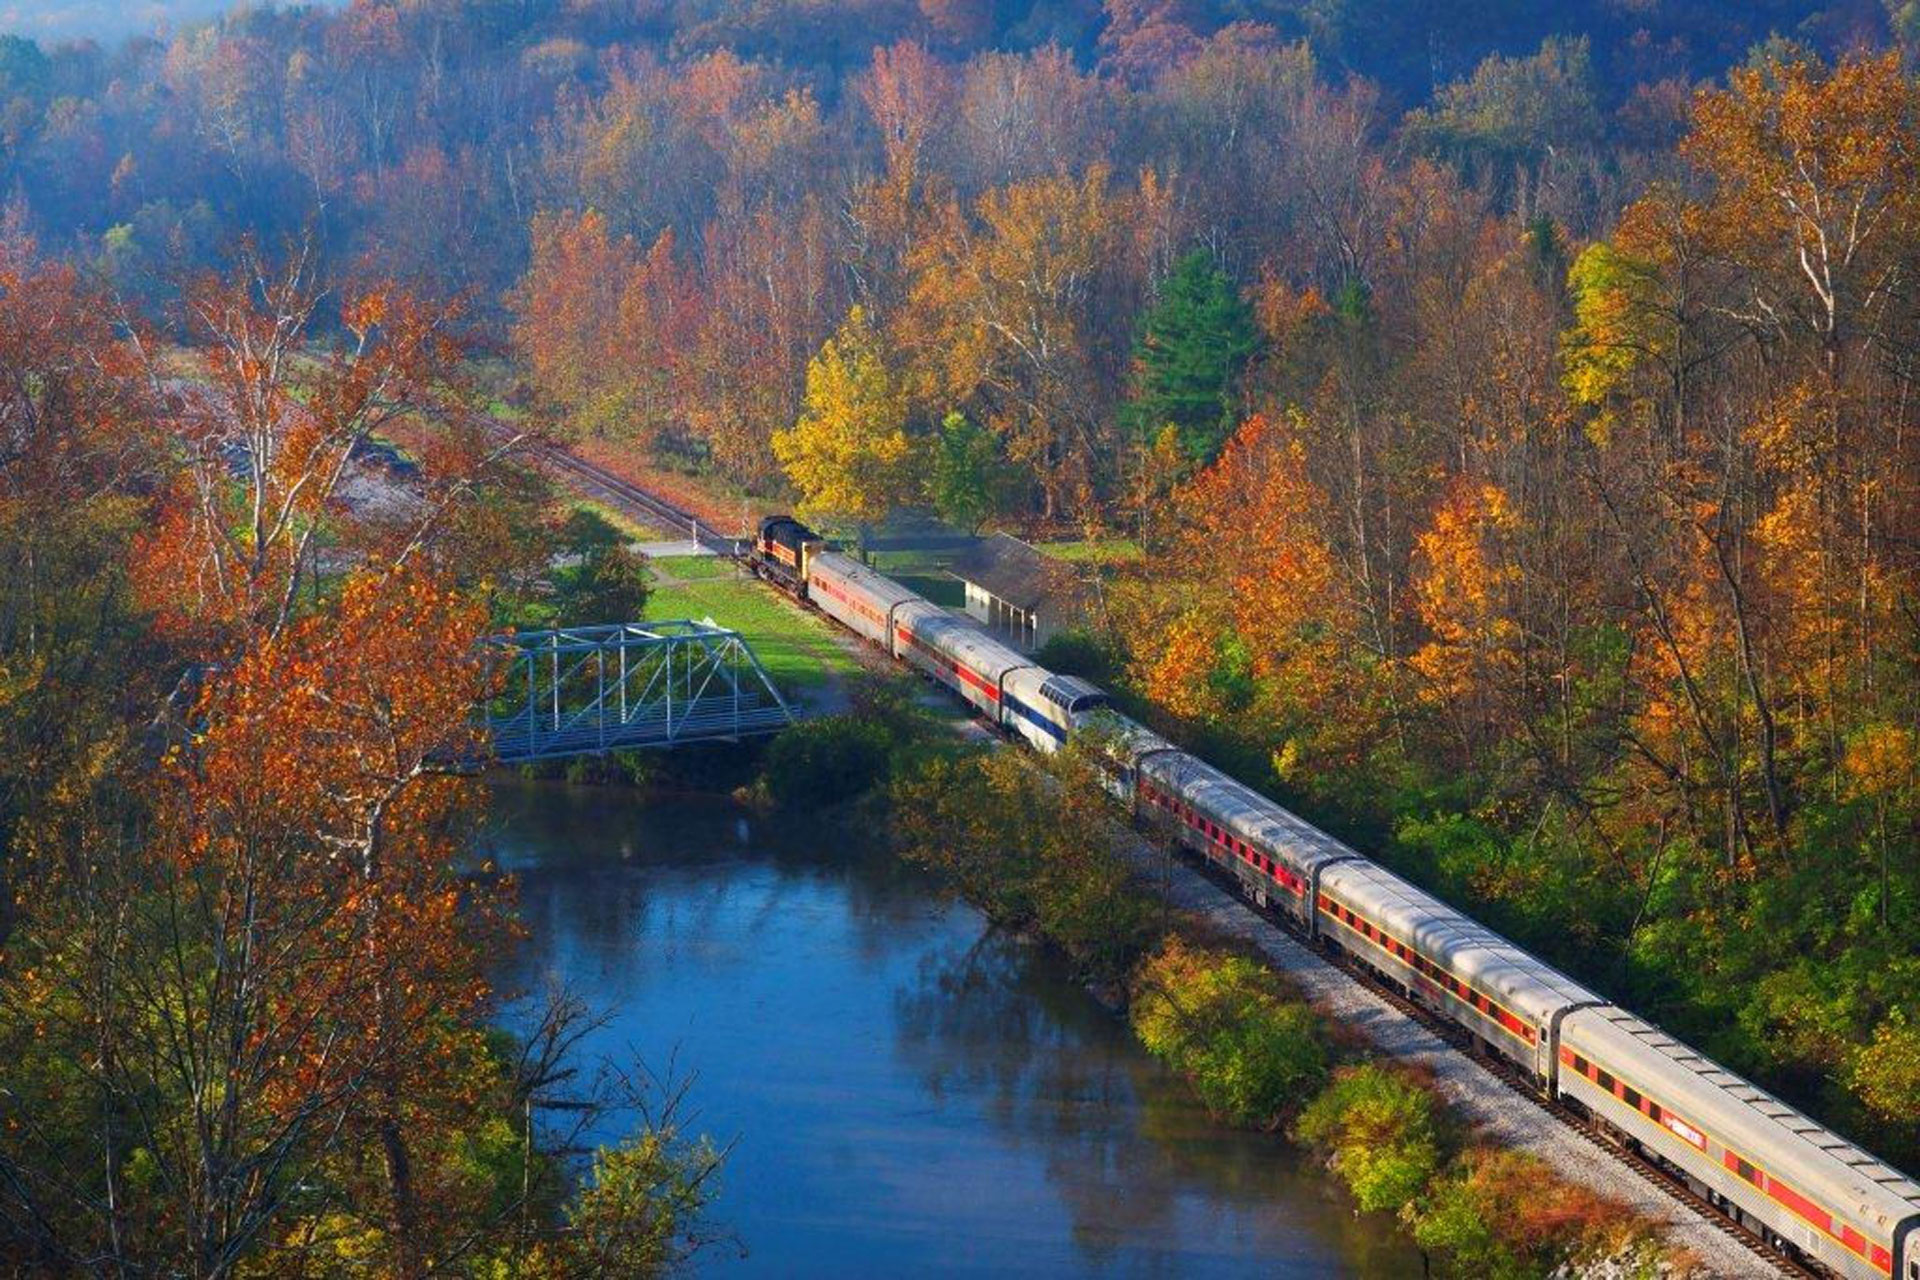 Cuyahoga-Valley-Scenic-Railroad-Aerial-View; Courtesy of Cuyahoga Valley Scenic Railroad